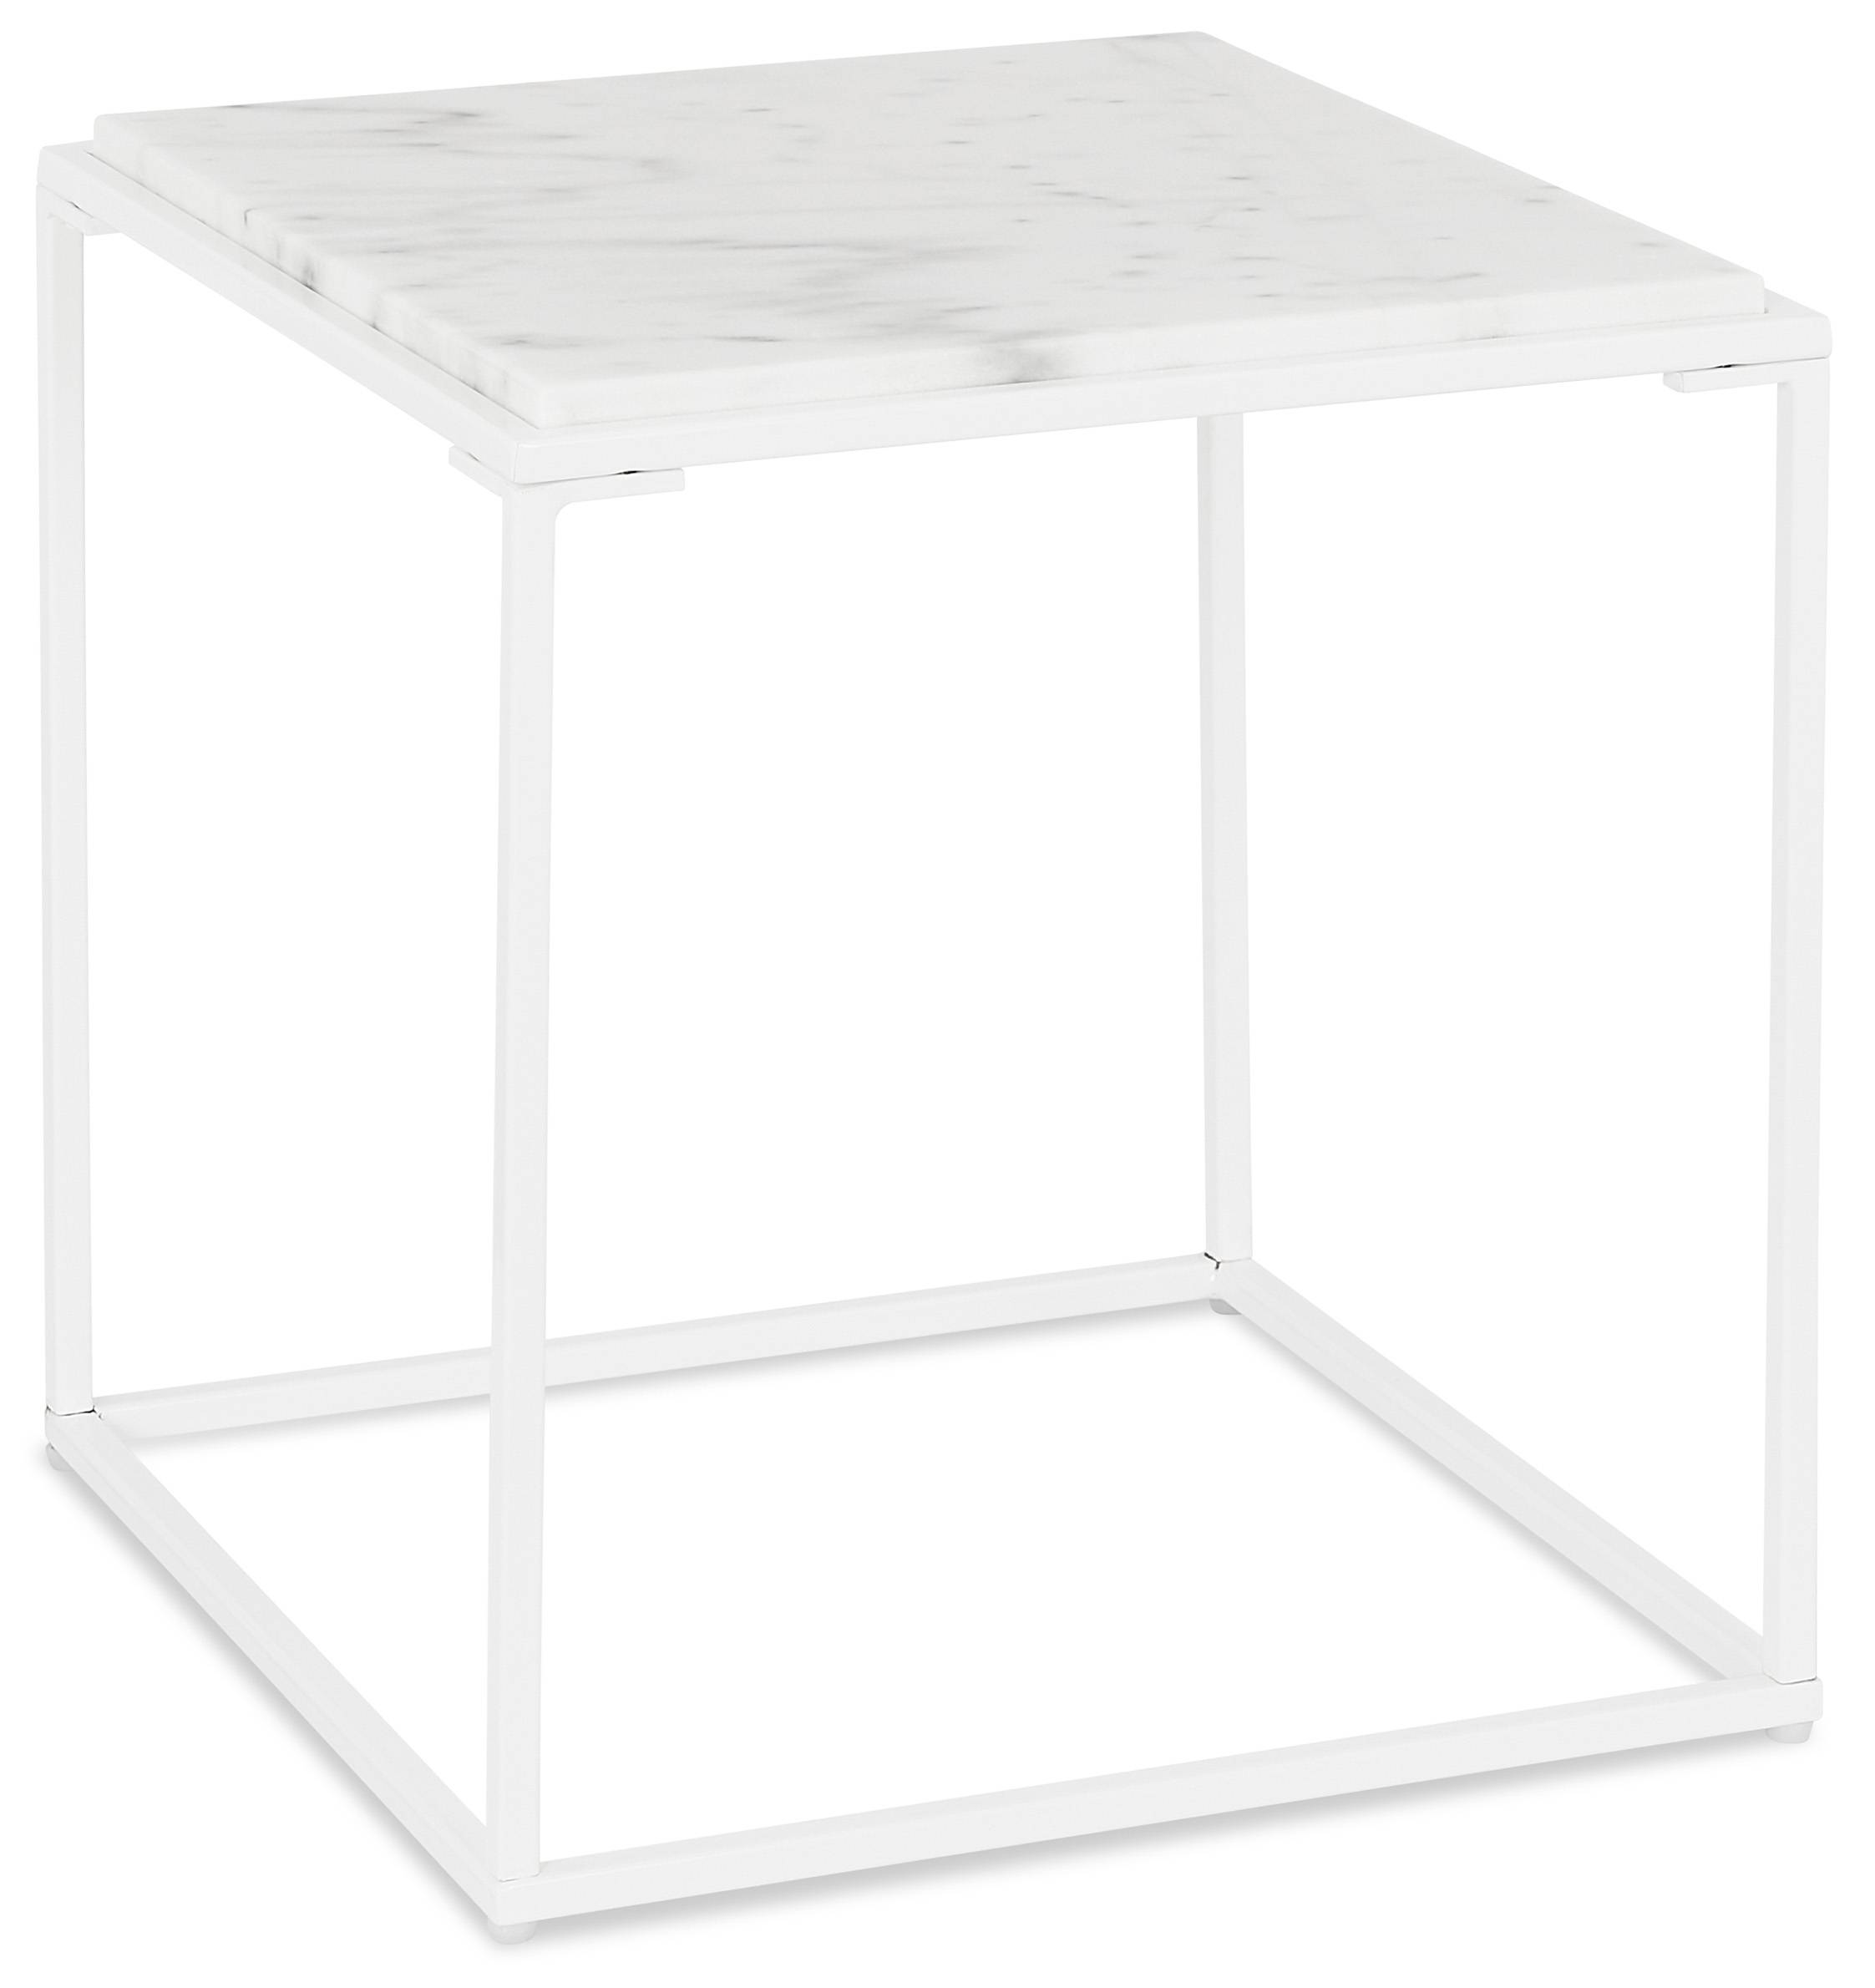 Alterego Table basse d'appoint 'SPIN MINI' blanche en pierre marbrée